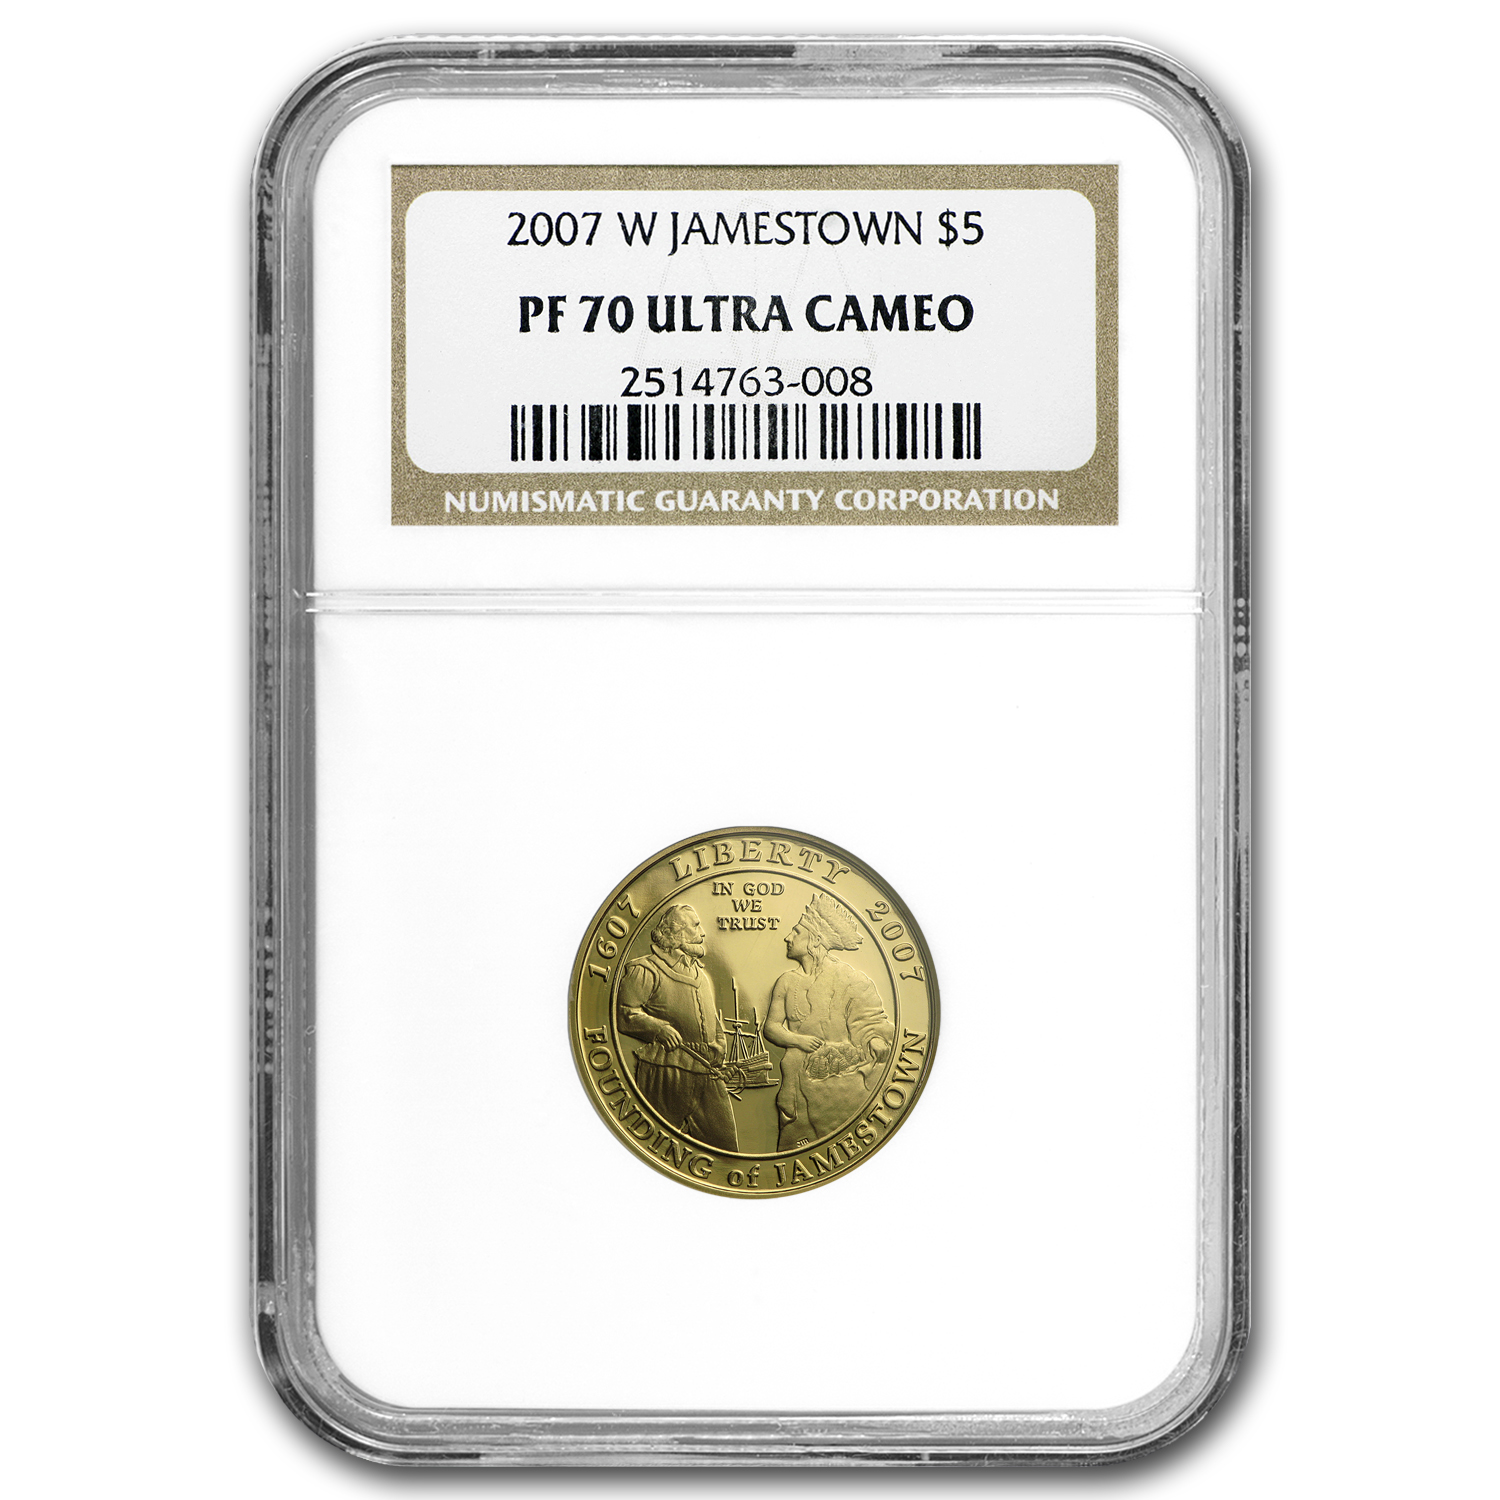 2007-W $5 Gold Commemorative Jamestown PF-70 NGC